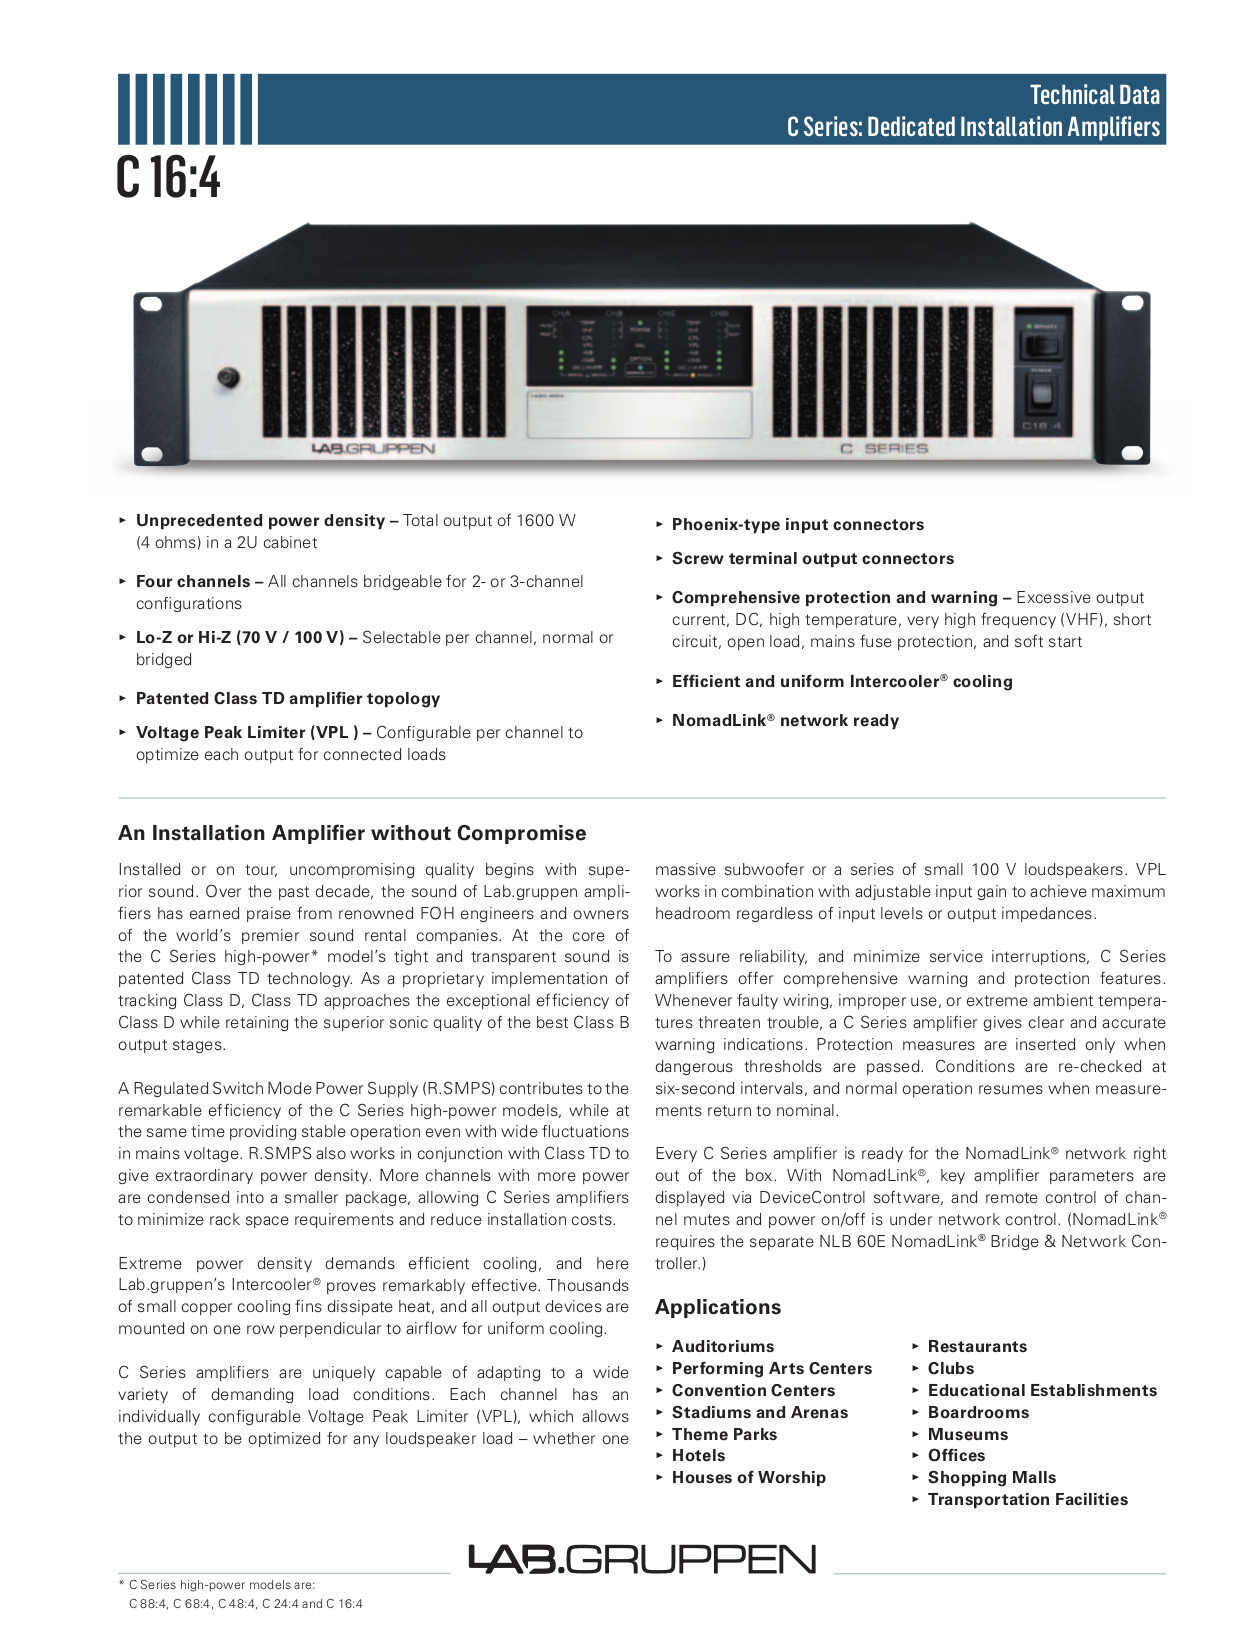 pdf for Lab.gruppen Amp C Series C 16 4 manual